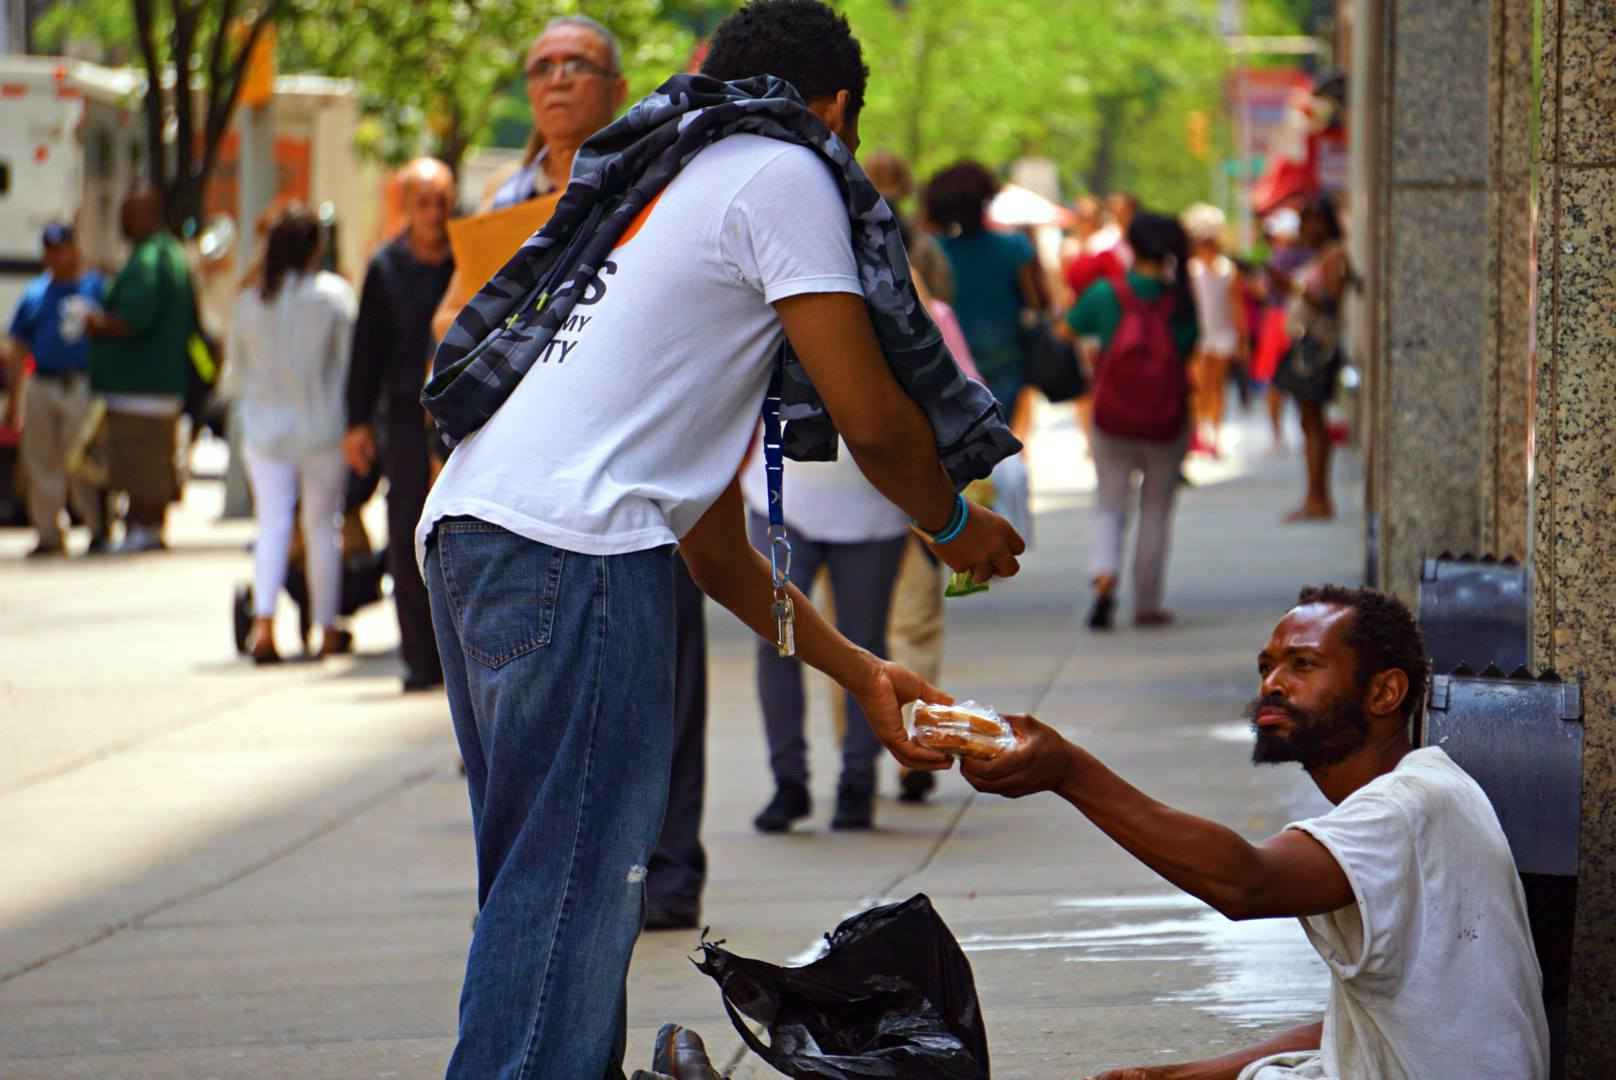 Donate now to feed the homeless of New York. image